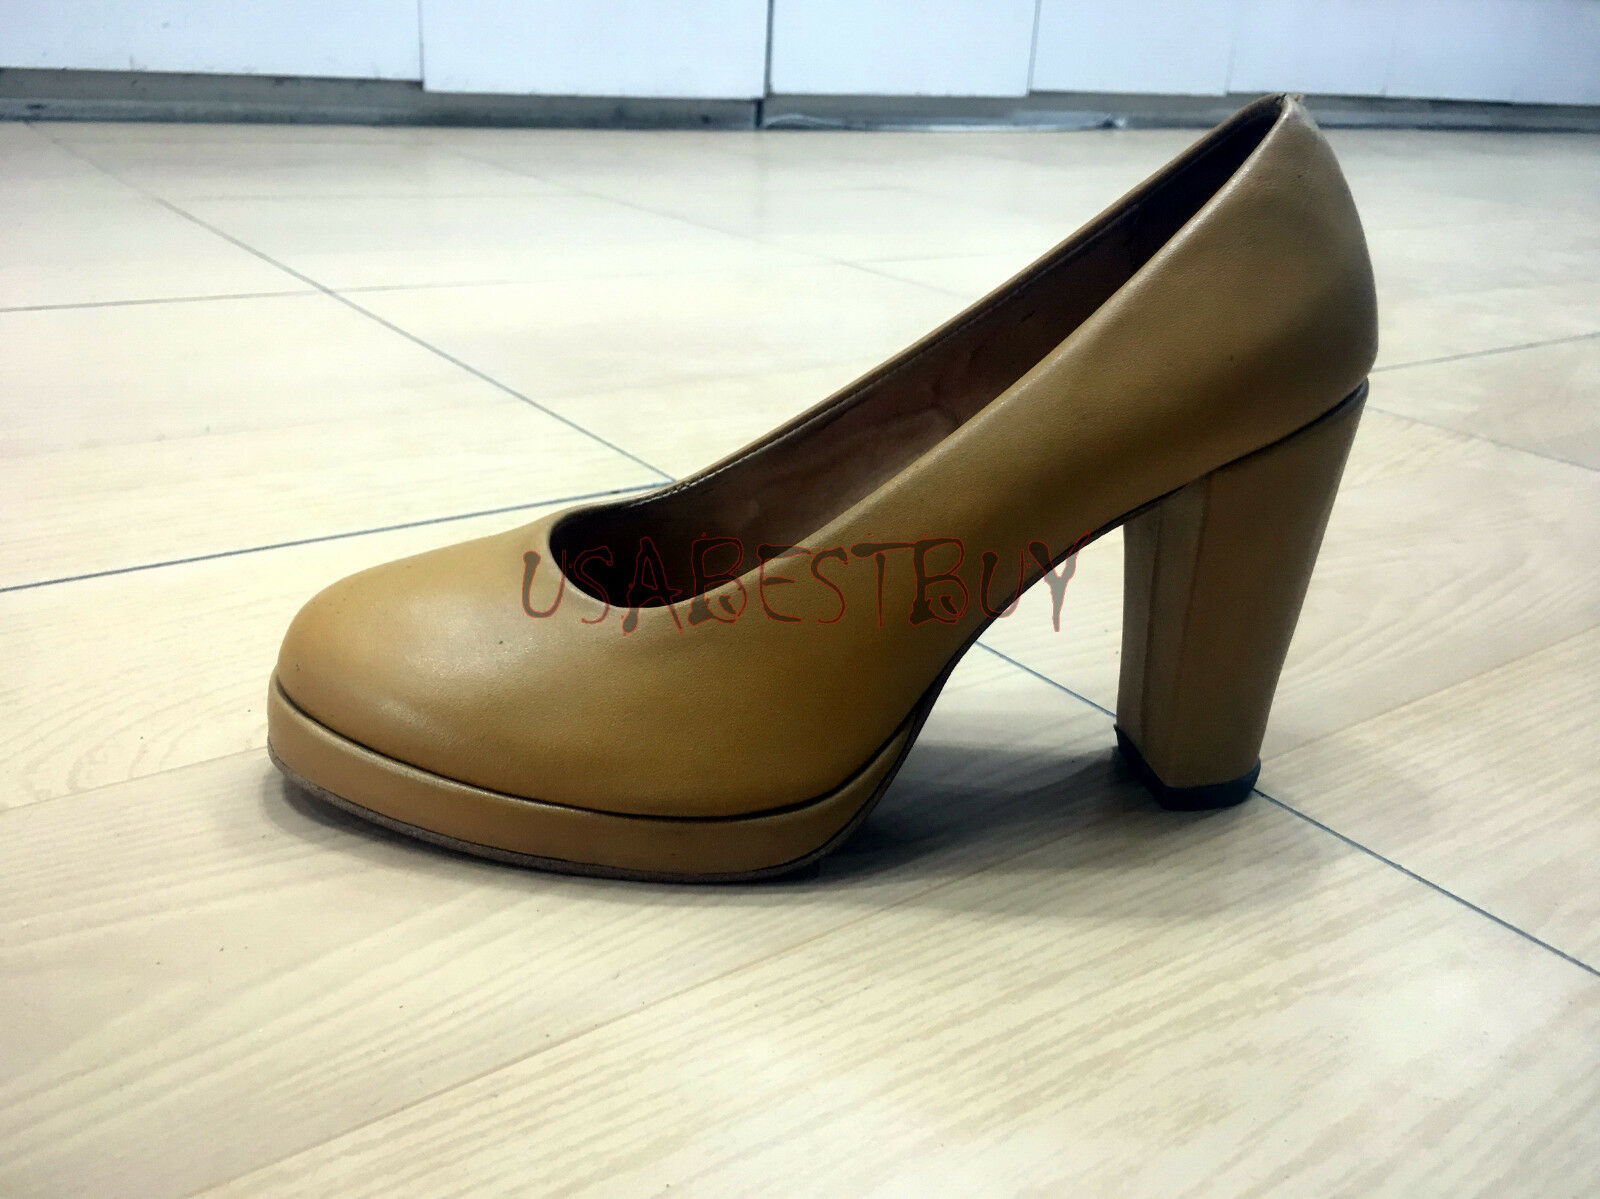 New Handmade Women Elegant Superb Pumps with Wooden Heel and Leather sole